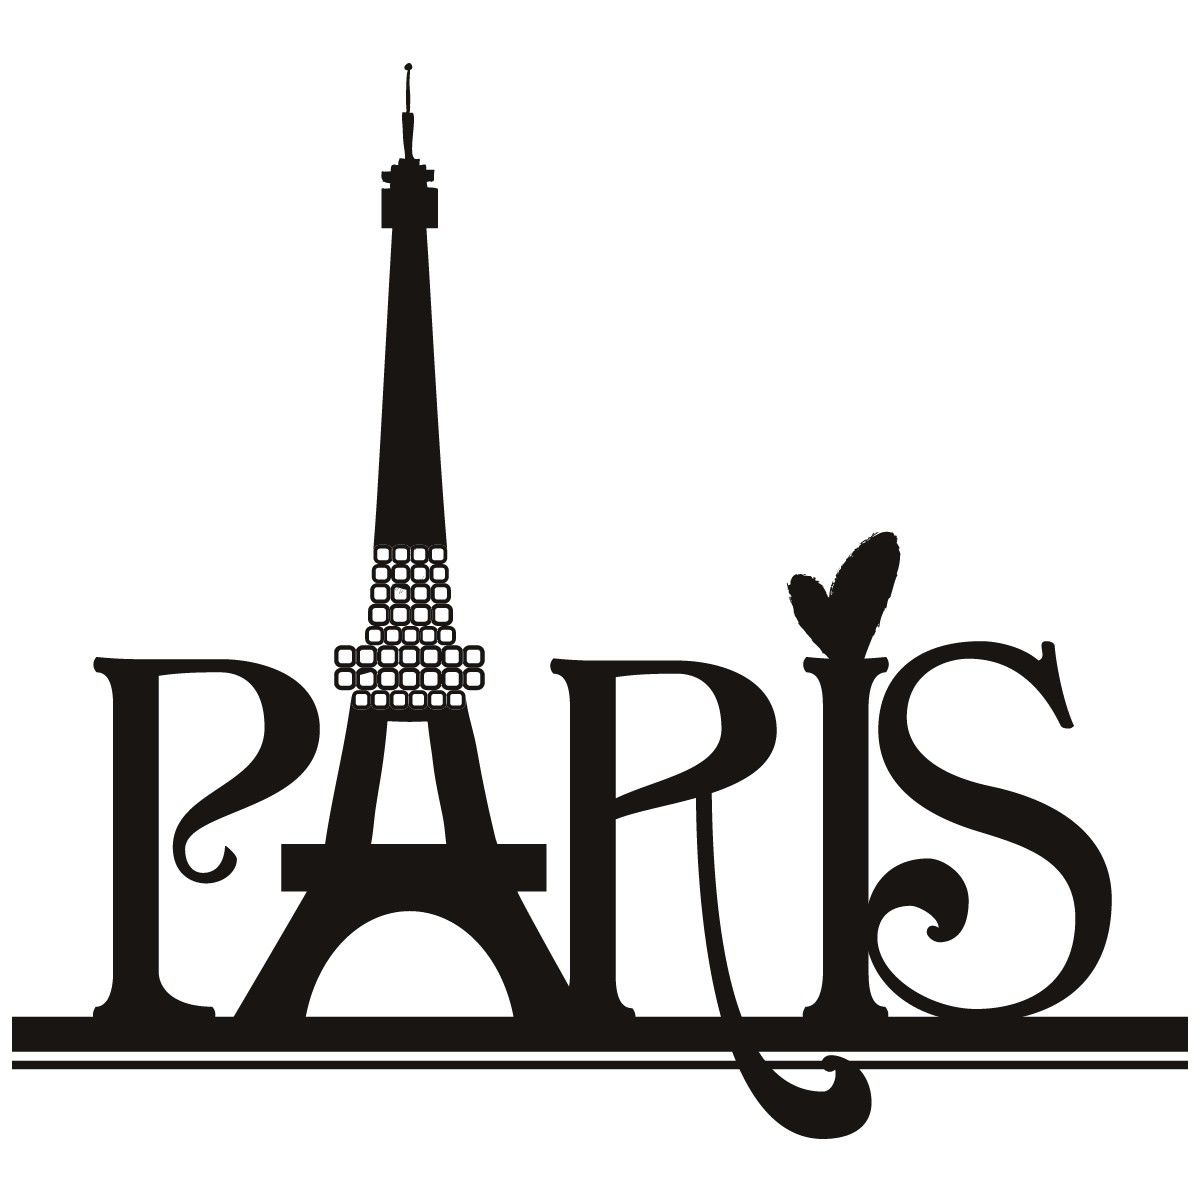 paris eiffel tower wall art sticker 30 jpg 1 200 1 200 pixels rh pinterest com clip art paris theme paris clip art free images